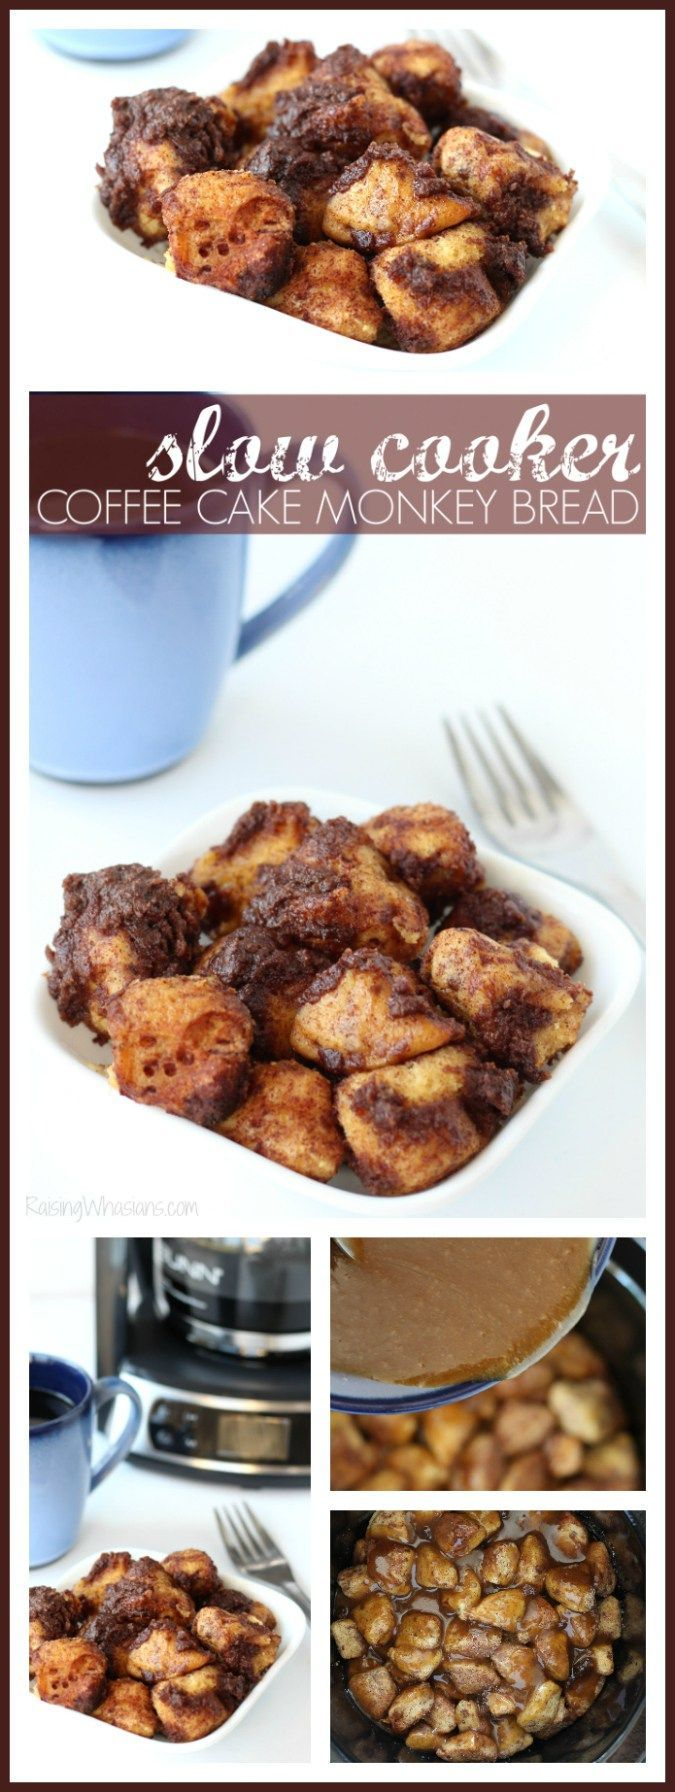 Slow Cooker Coffee Cake Monkey Bread | Breakfast or Dessert? You decide with this delicious and easy crockpot recipe! - Raising Whasians (AD)